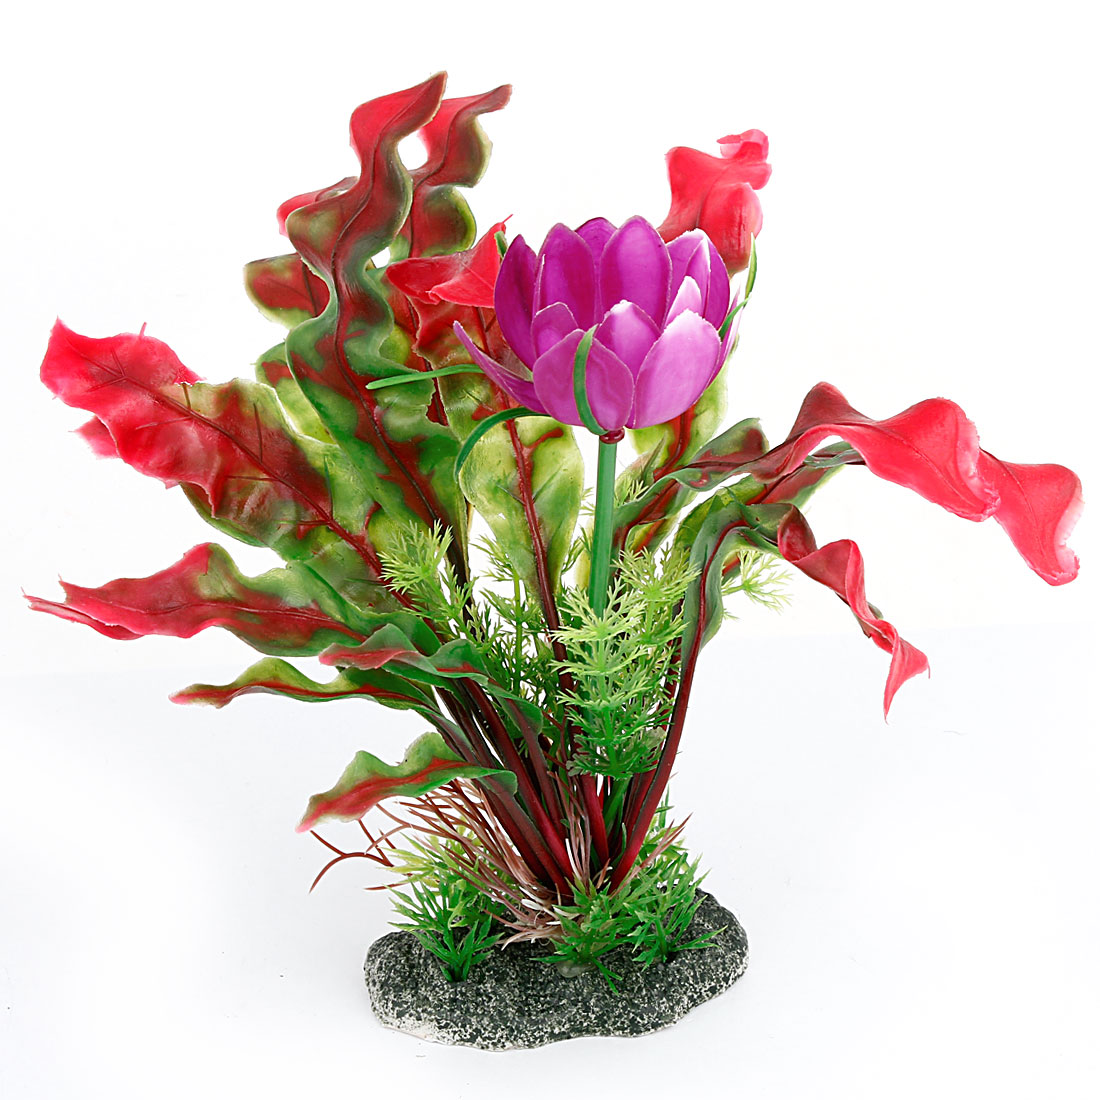 "Aquarium Purple Flower Plastic Grass Plant Decor 8"" Height"